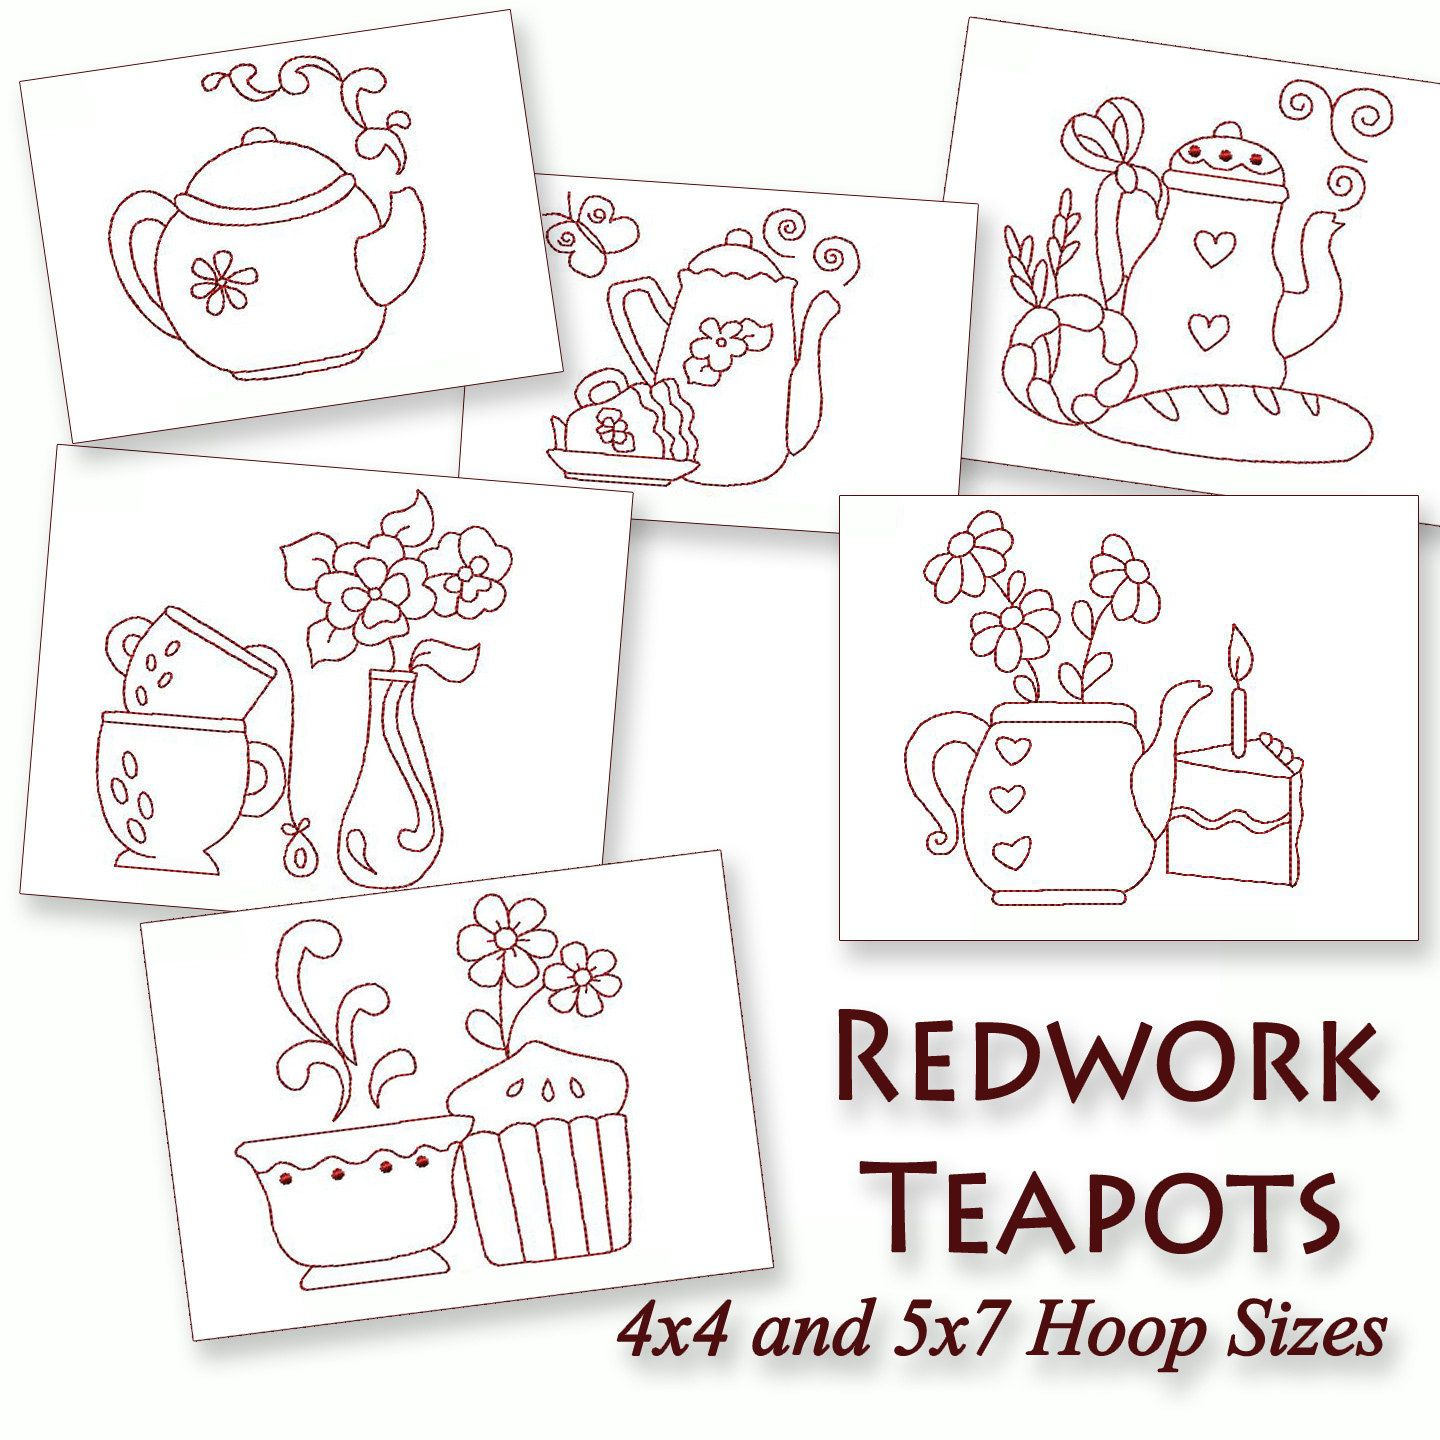 Kitchen Teapots Redwork Machine Embroidery Patterns / Designs   4x4 And 5x7  Hoop   6 Designs INSTANT DOWNLOAD